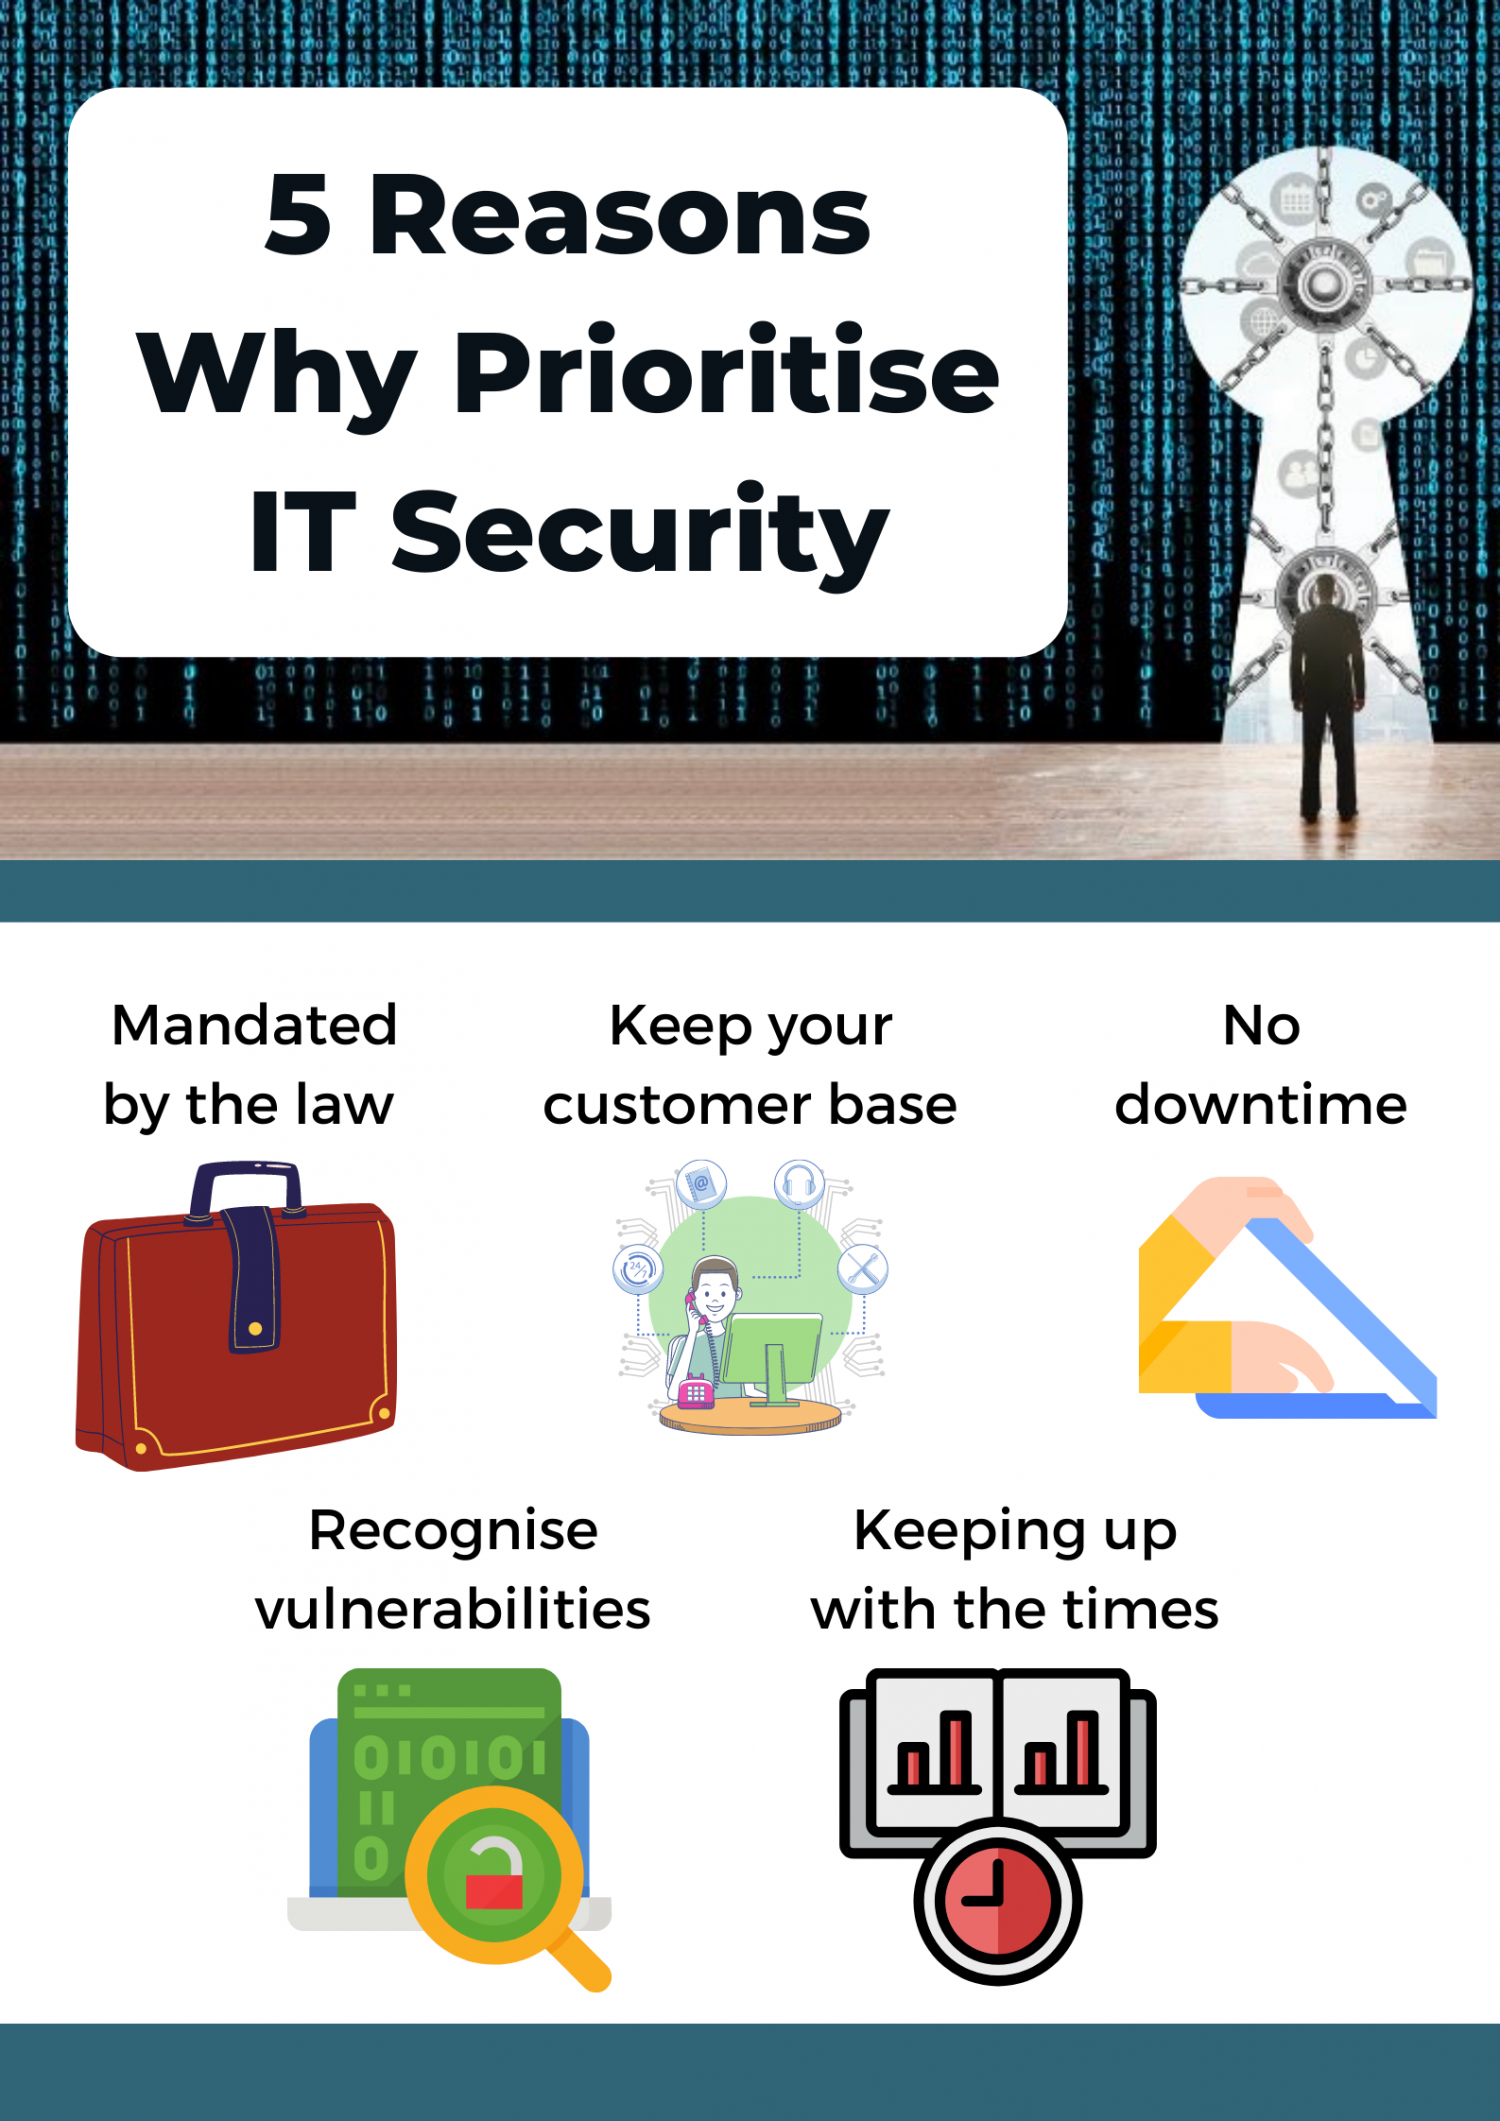 5 Reasons Why Prioritise IT Security Infographic